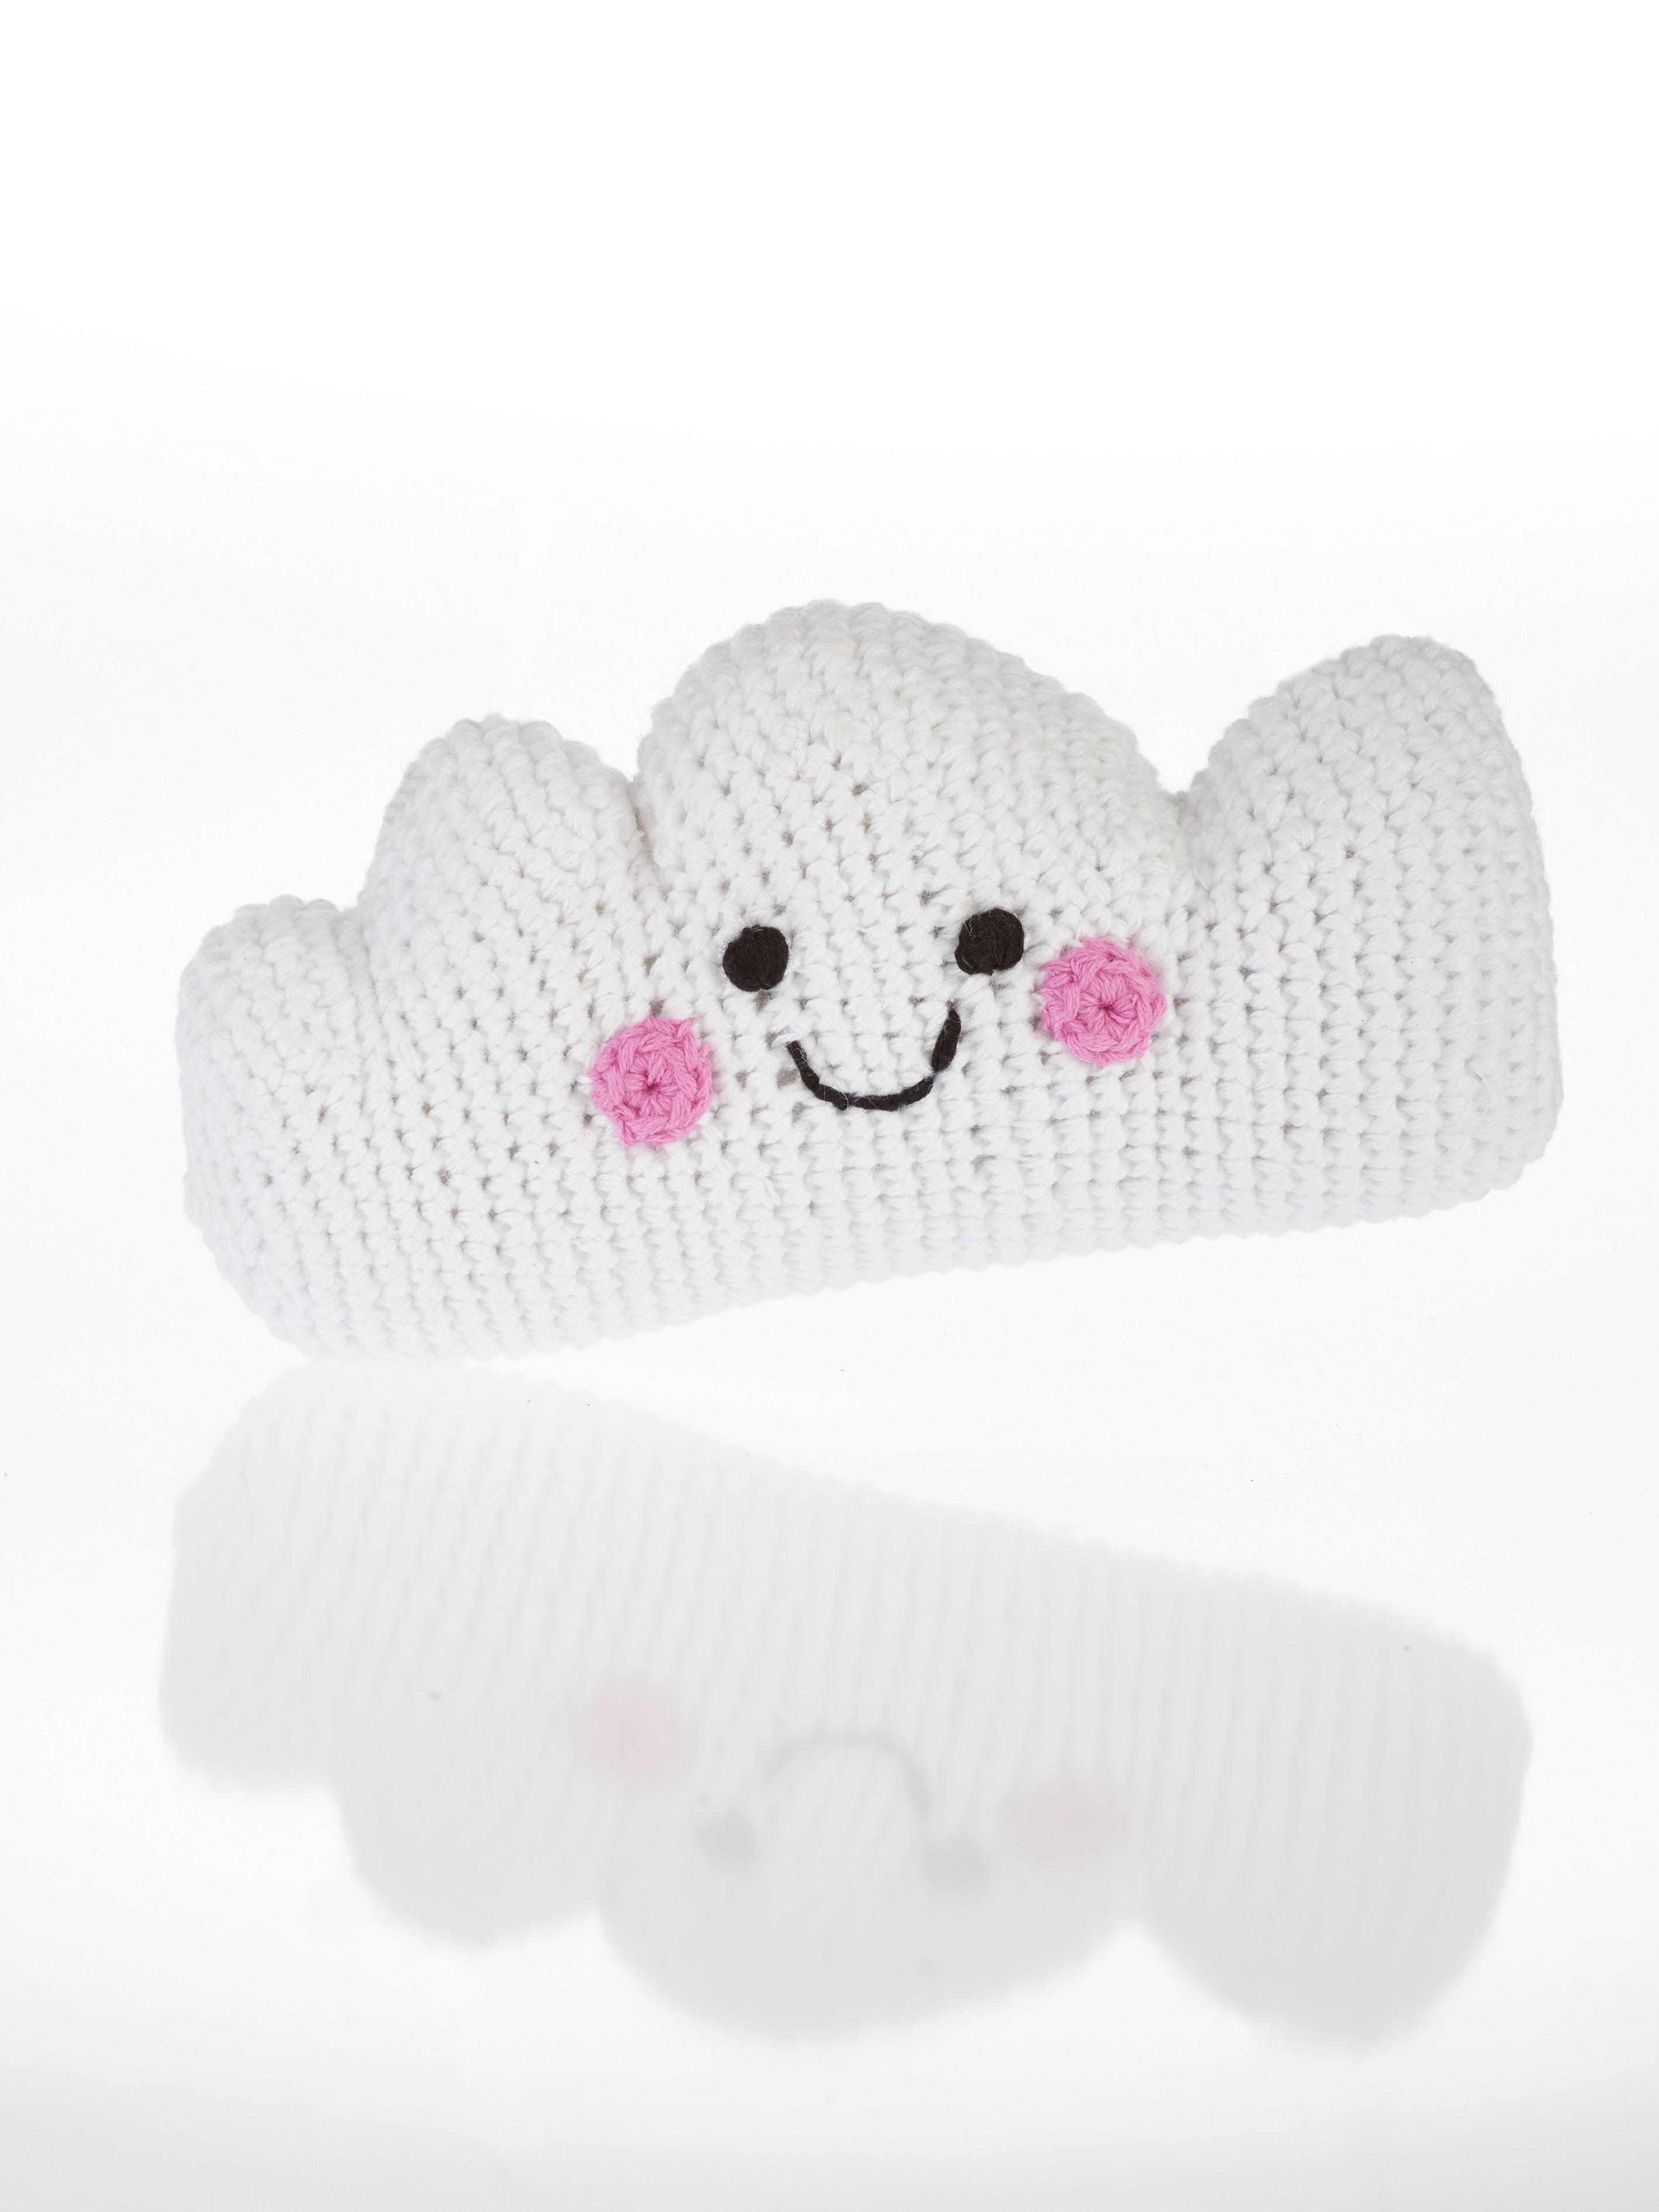 Fair Trade Crochet Cotton Cloud Baby Rattle